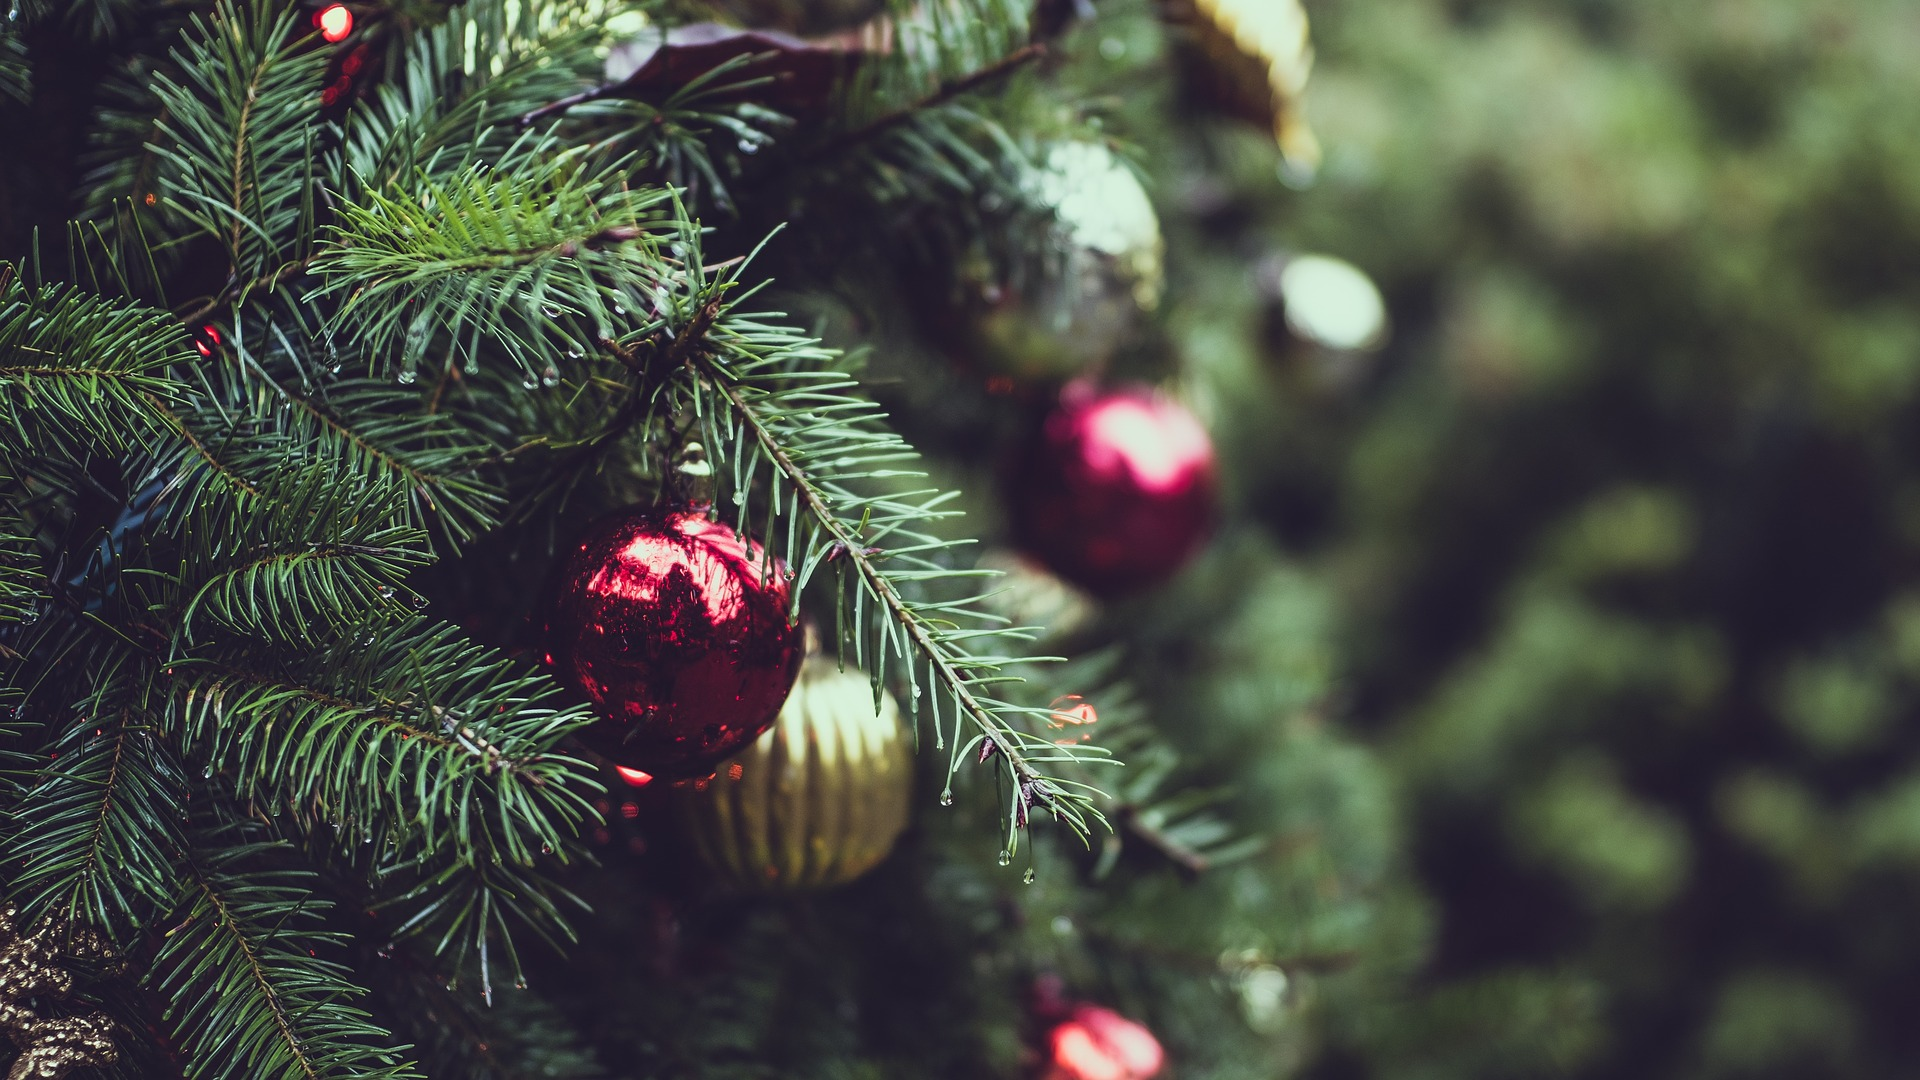 Blog: Rocking around the Christmas weed